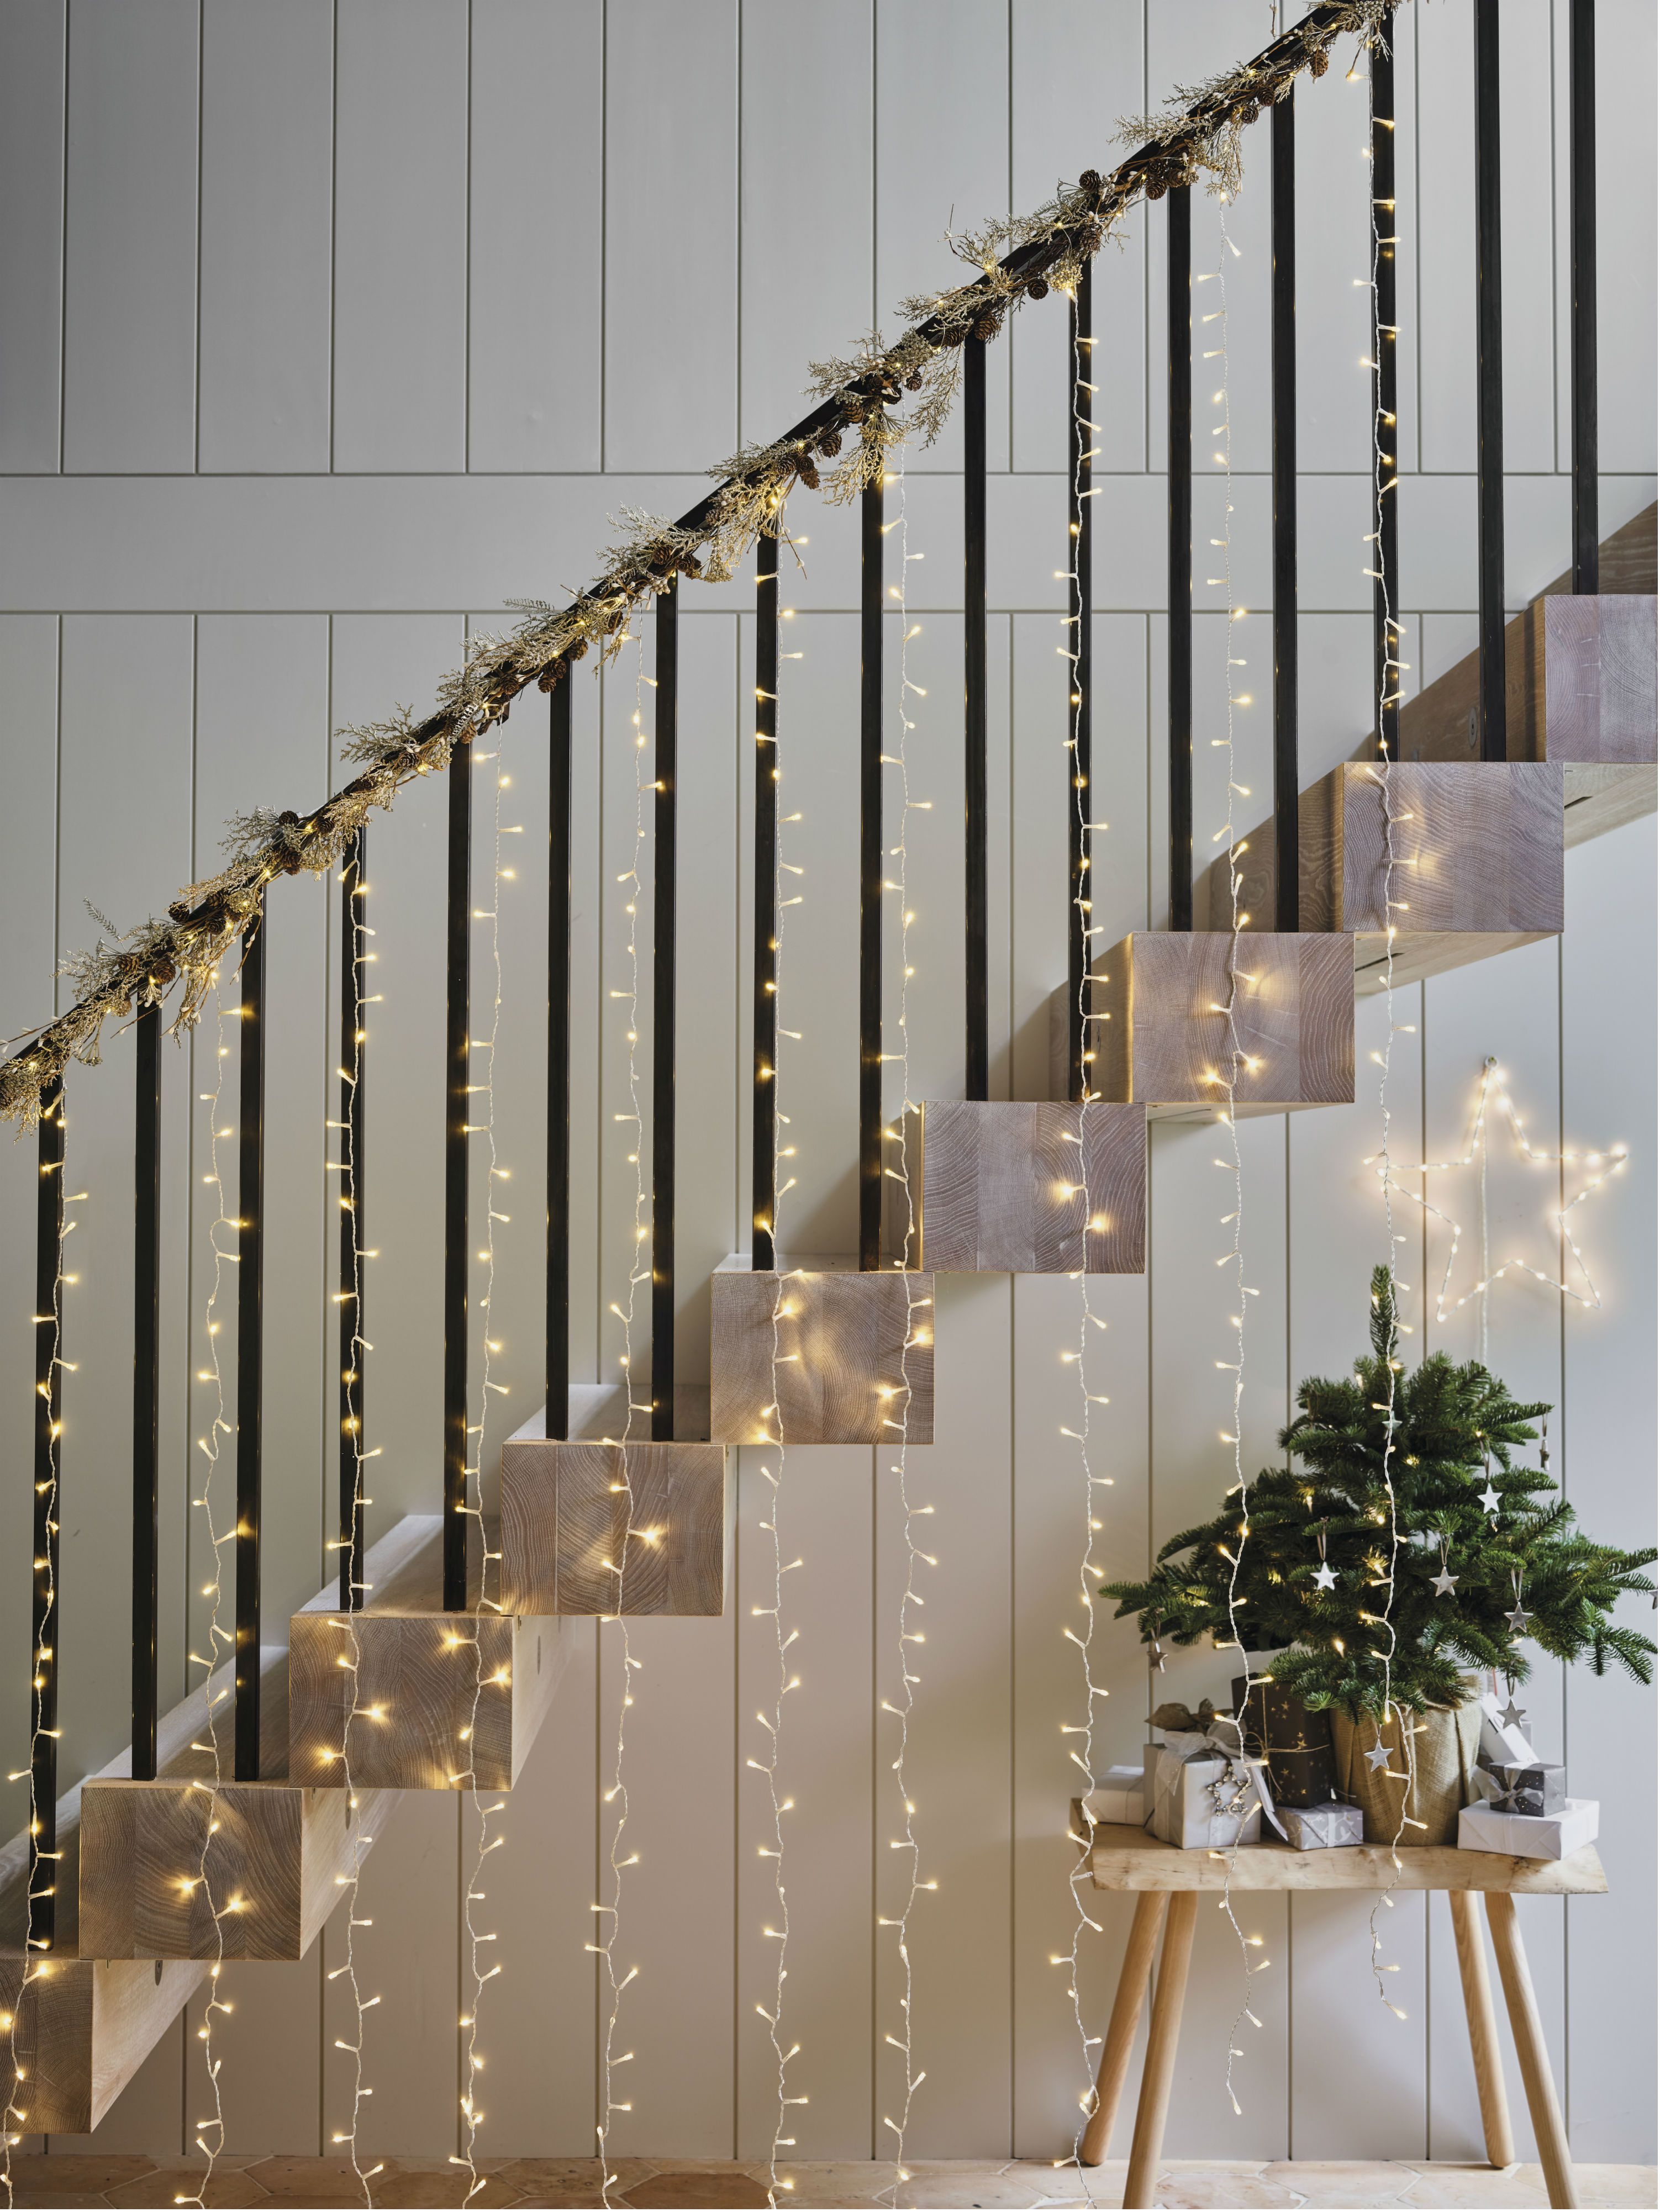 How To Make Curtain Lights Curtain Lights 500 Bulbs Christmas Is Love Christmas Stairs